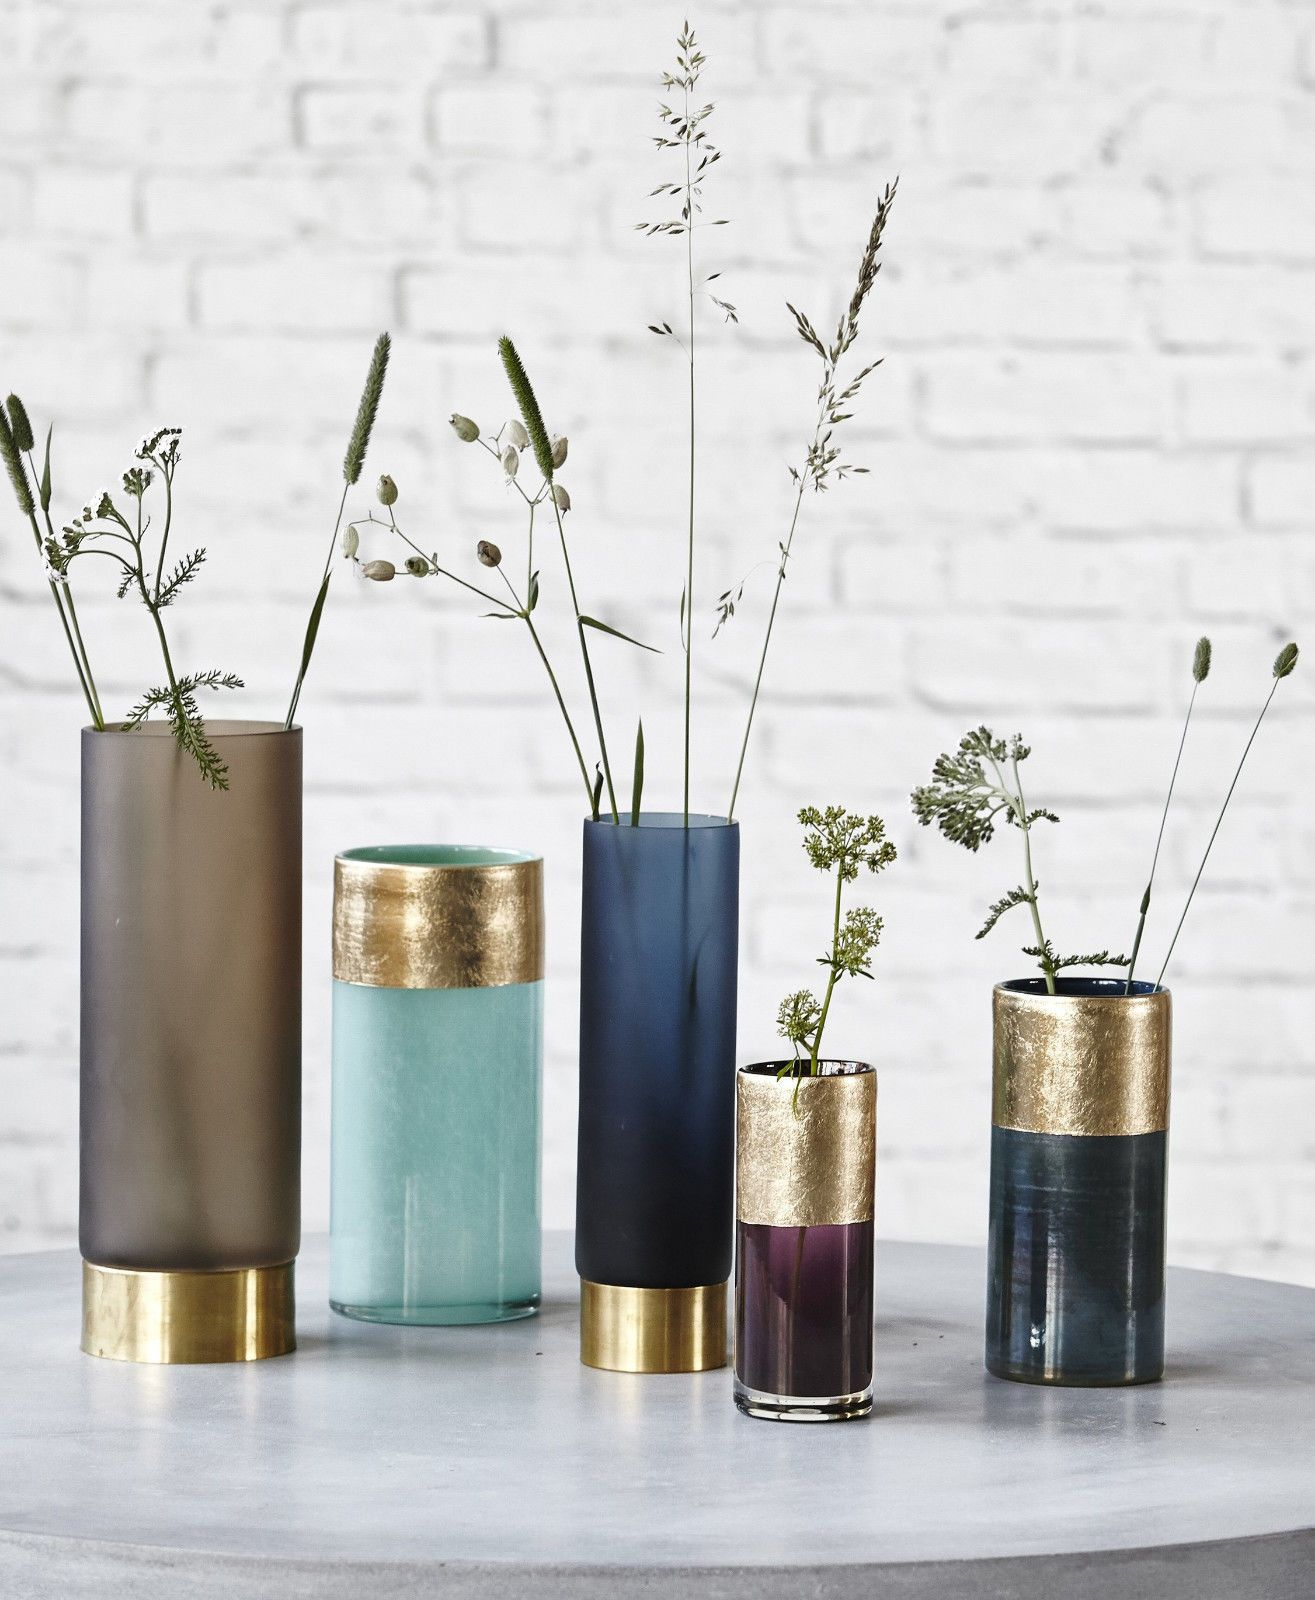 Wohnzimmer Lila Türkis Pin By Brittany Long On Decor In 2019 Blumenvase Gold